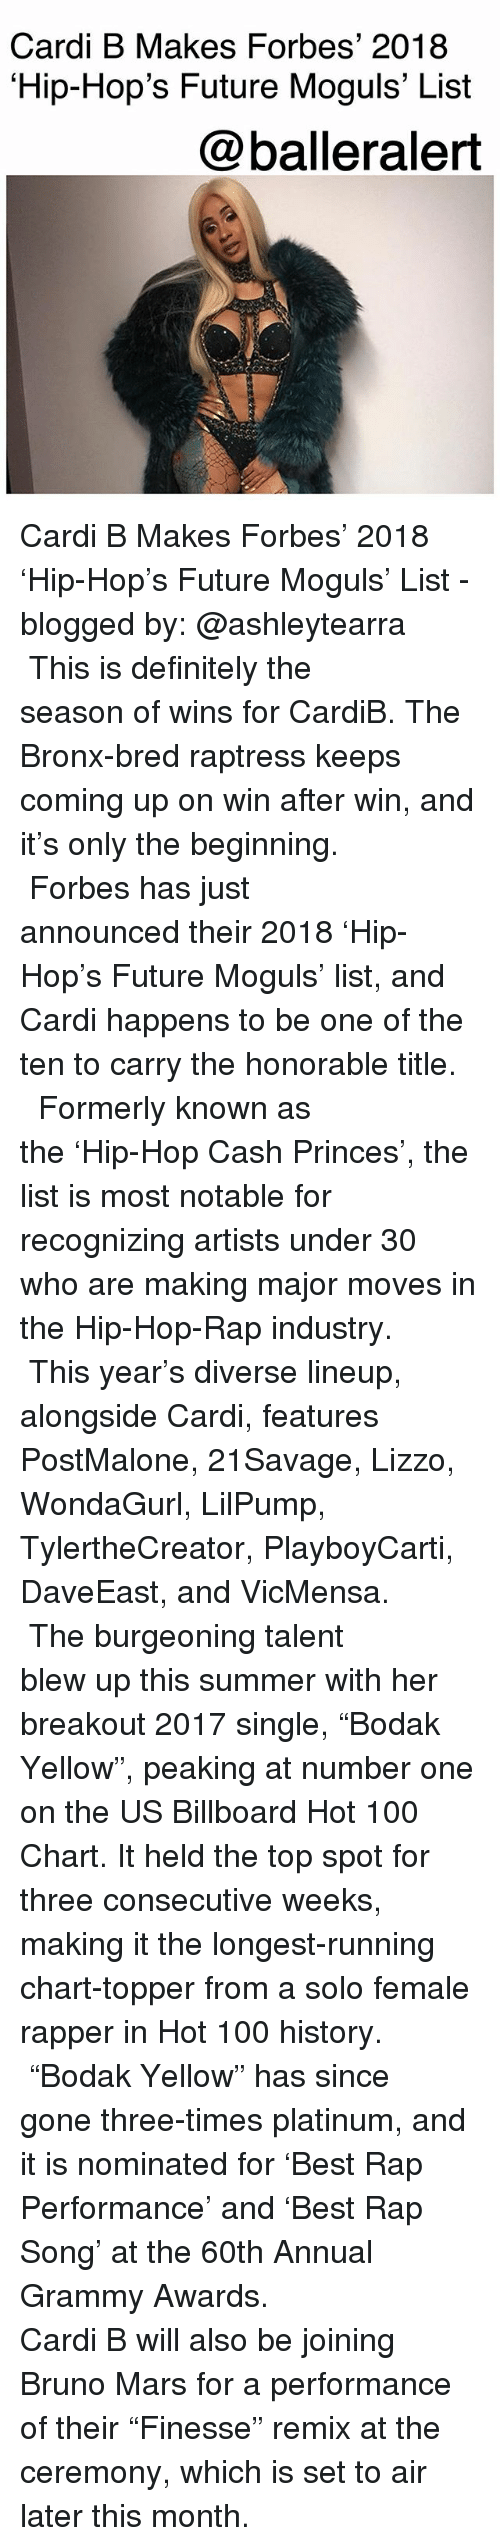 "Grammy Awards: Cardi B Makes Forbes' 2018  Hip-Hop's Future Moguls' List  @balleralert Cardi B Makes Forbes' 2018 'Hip-Hop's Future Moguls' List - blogged by: @ashleytearra ⠀⠀⠀⠀⠀⠀⠀ ⠀⠀⠀⠀⠀⠀⠀ This is definitely the season of wins for CardiB. The Bronx-bred raptress keeps coming up on win after win, and it's only the beginning. ⠀⠀⠀⠀⠀⠀⠀ ⠀⠀⠀⠀⠀⠀⠀ Forbes has just announced their 2018 'Hip-Hop's Future Moguls' list, and Cardi happens to be one of the ten to carry the honorable title. ⠀⠀⠀⠀⠀⠀⠀ ⠀⠀⠀⠀⠀⠀⠀ Formerly known as the 'Hip-Hop Cash Princes', the list is most notable for recognizing artists under 30 who are making major moves in the Hip-Hop-Rap industry. ⠀⠀⠀⠀⠀⠀⠀ ⠀⠀⠀⠀⠀⠀⠀ This year's diverse lineup, alongside Cardi, features PostMalone, 21Savage, Lizzo, WondaGurl, LilPump, TylertheCreator, PlayboyCarti, DaveEast, and VicMensa. ⠀⠀⠀⠀⠀⠀⠀ ⠀⠀⠀⠀⠀⠀⠀ The burgeoning talent blew up this summer with her breakout 2017 single, ""Bodak Yellow"", peaking at number one on the US Billboard Hot 100 Chart. It held the top spot for three consecutive weeks, making it the longest-running chart-topper from a solo female rapper in Hot 100 history. ⠀⠀⠀⠀⠀⠀⠀ ⠀⠀⠀⠀⠀⠀⠀ ""Bodak Yellow"" has since gone three-times platinum, and it is nominated for 'Best Rap Performance' and 'Best Rap Song' at the 60th Annual Grammy Awards. ⠀⠀⠀⠀⠀⠀⠀ ⠀⠀⠀⠀⠀⠀⠀ Cardi B will also be joining Bruno Mars for a performance of their ""Finesse"" remix at the ceremony, which is set to air later this month."